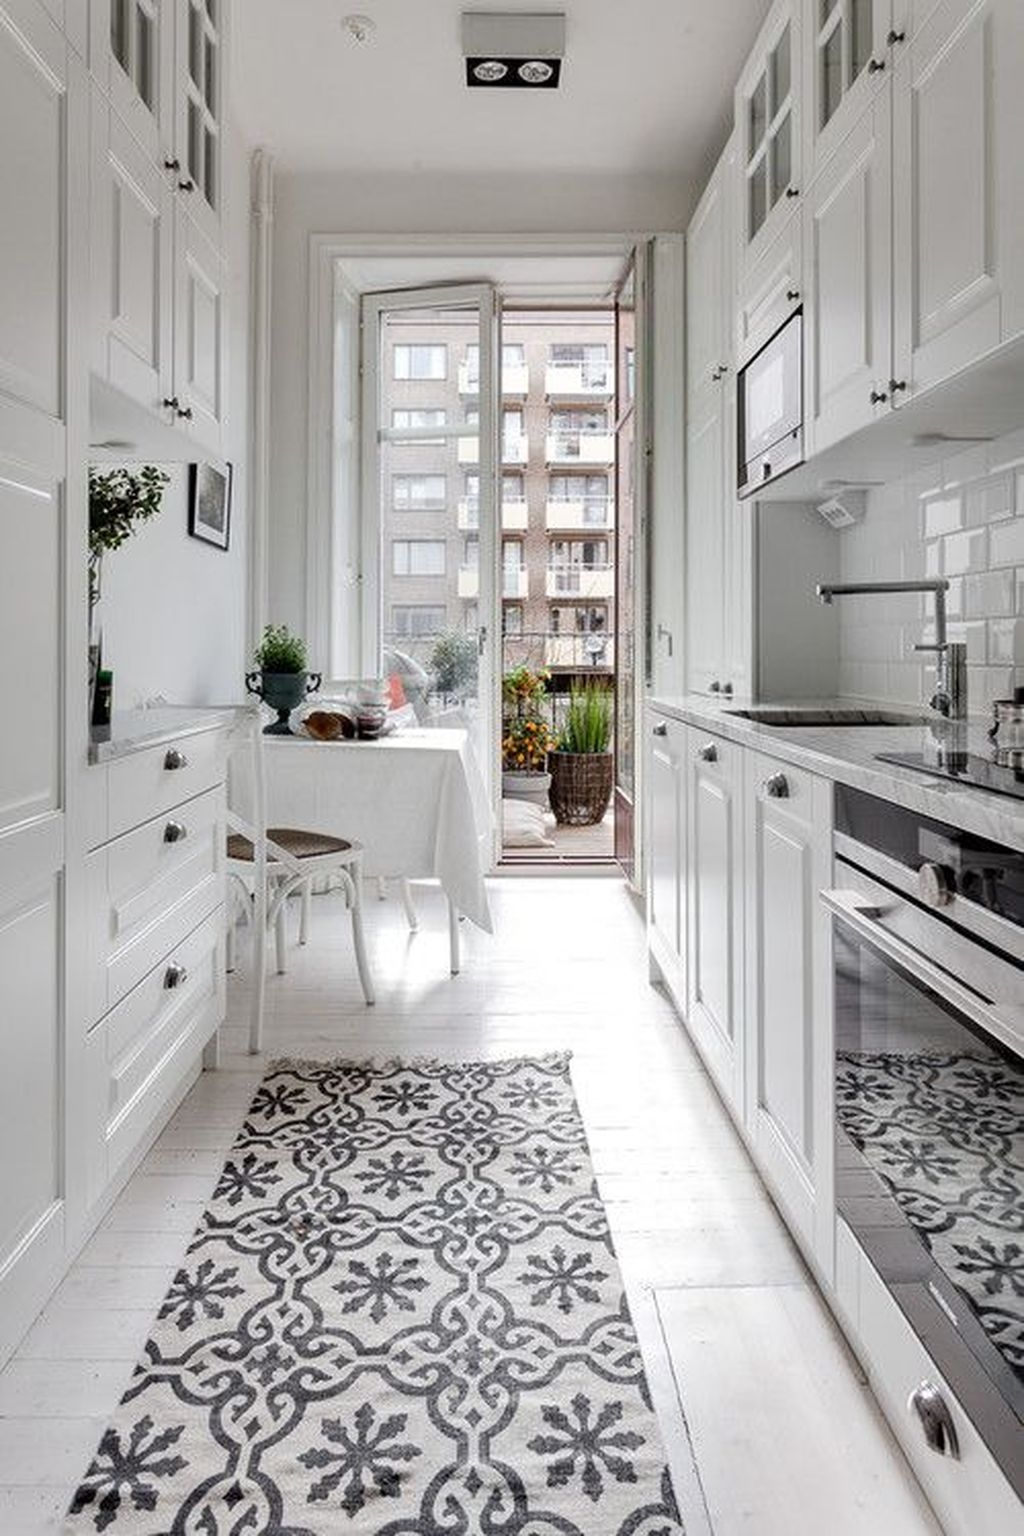 9 Space-Enhancing Ideas For Your Galley Kitchen Remodel